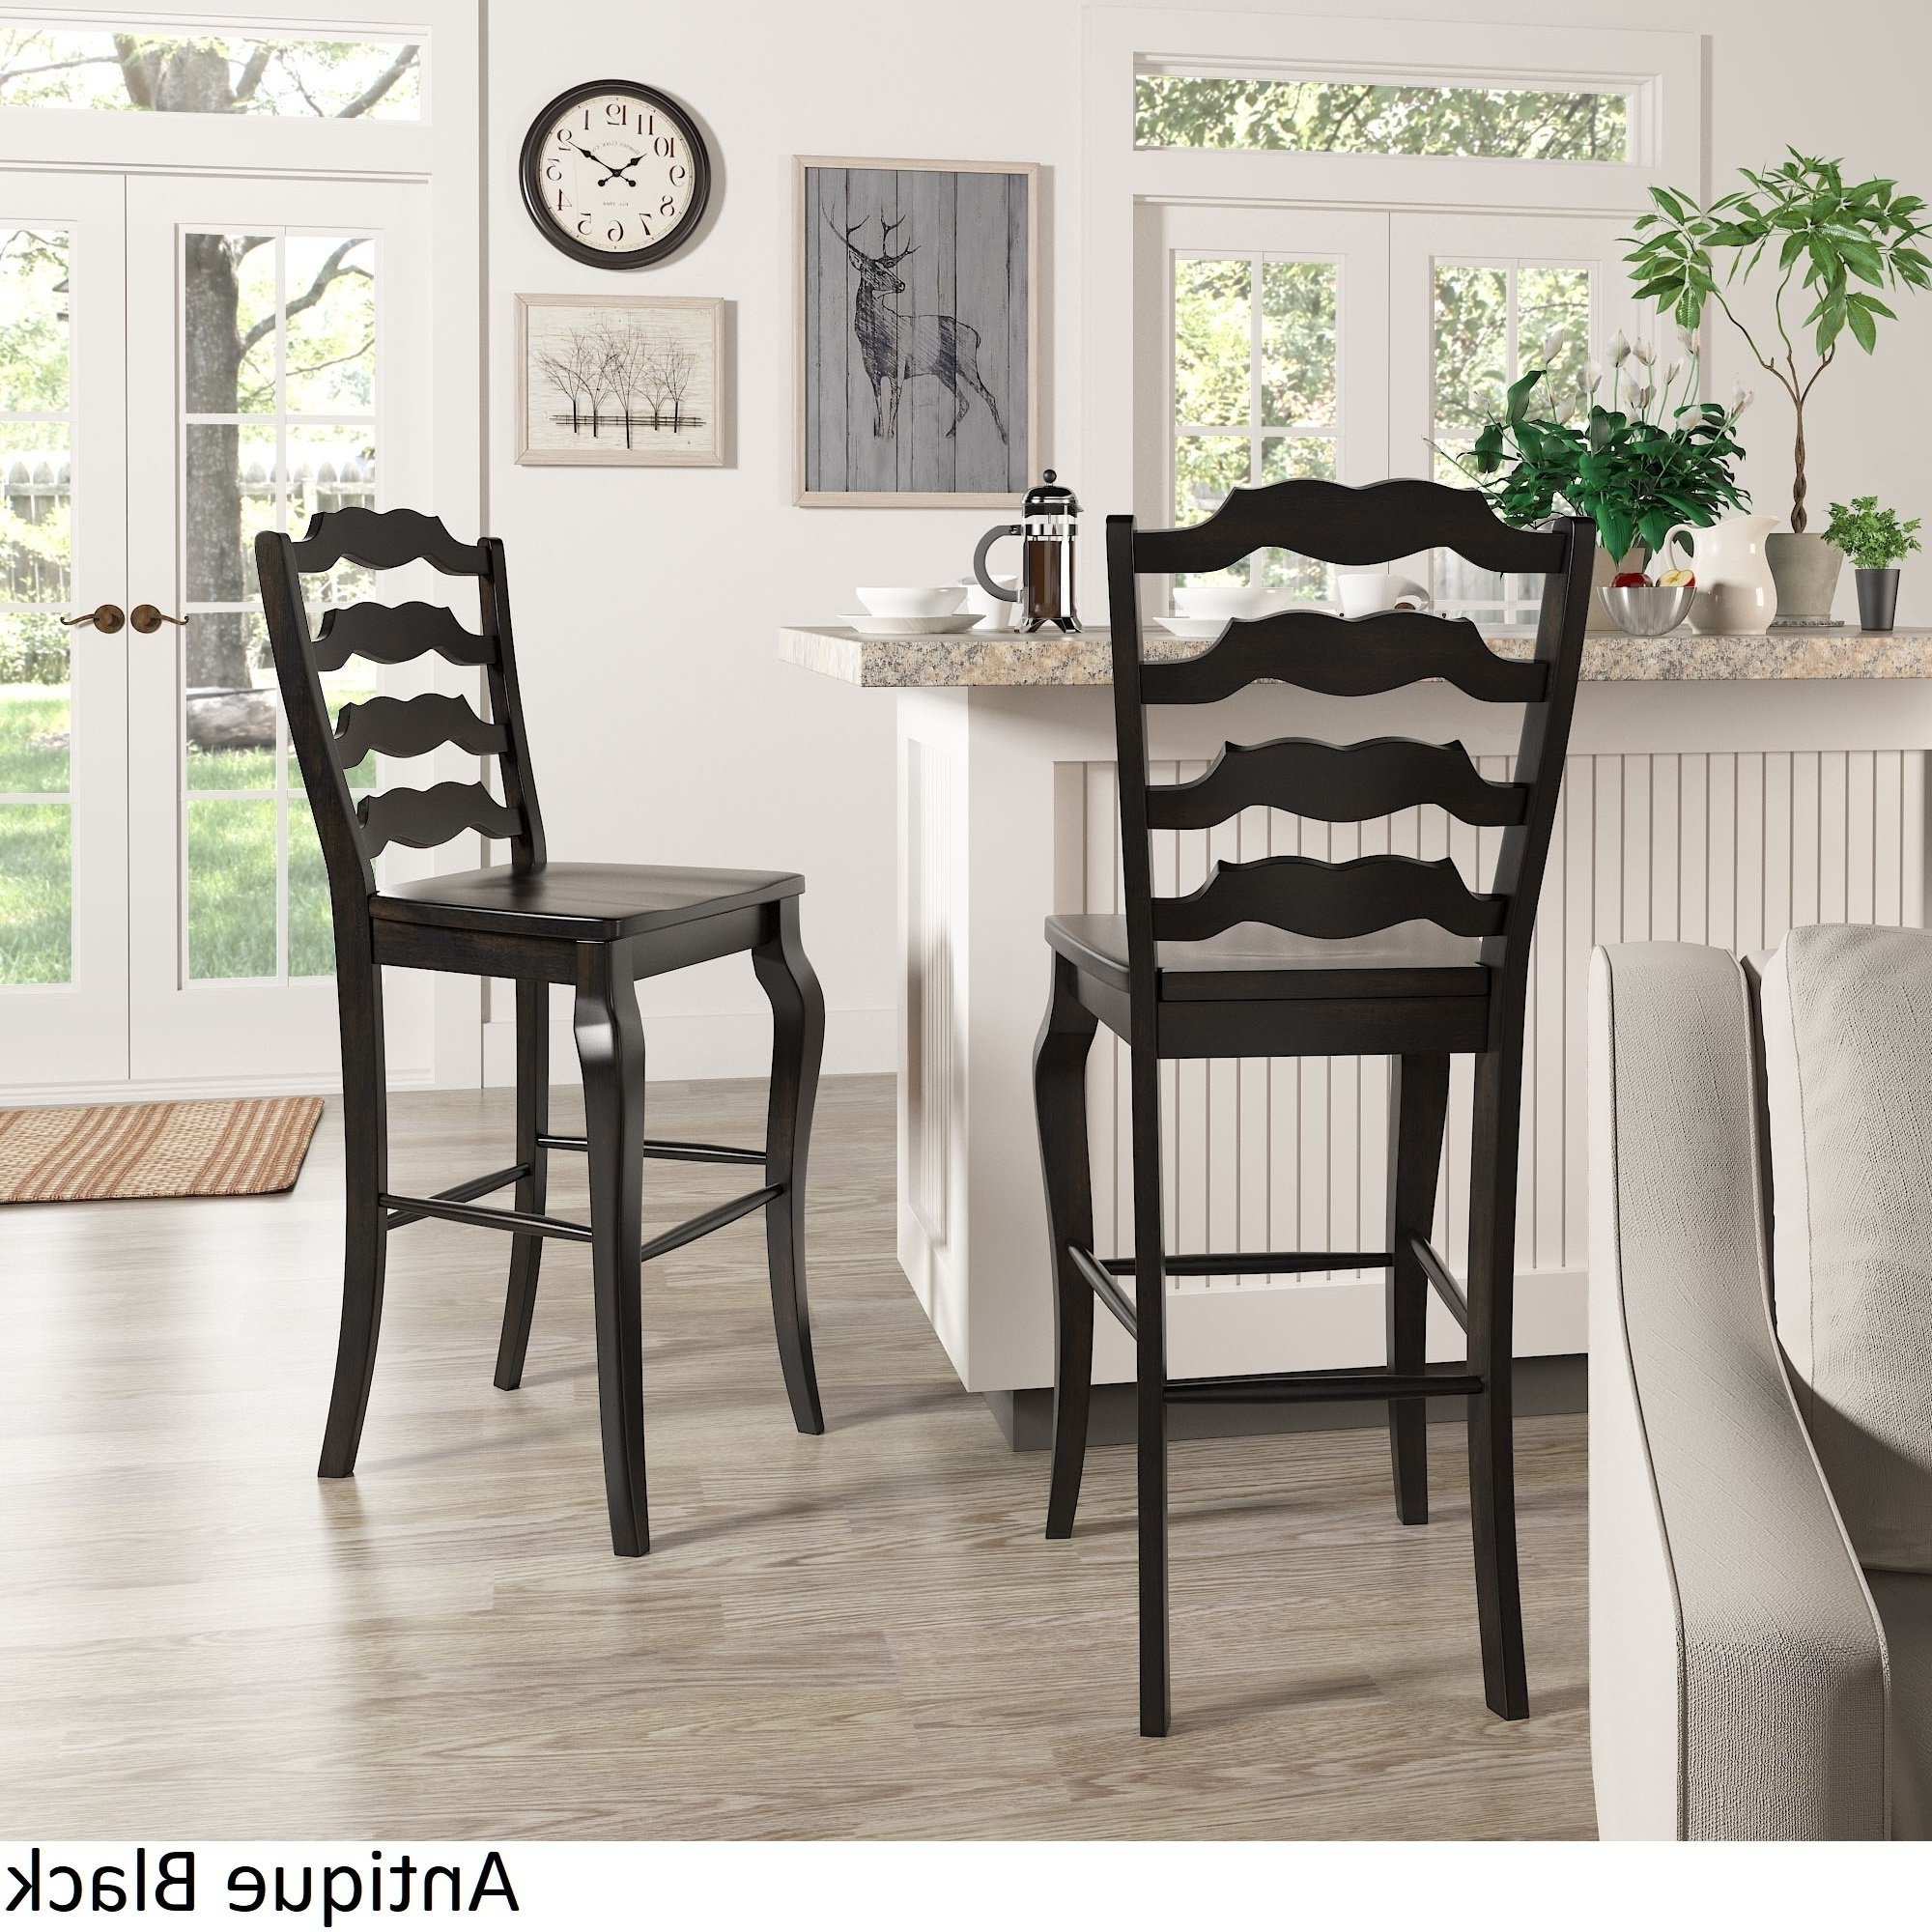 Most Popular Candice Ii 5 Piece Round Dining Sets With Slat Back Side Chairs For Shop Eleanor French Ladder Back Bar Height Chairs (Set Of 2) (View 17 of 25)